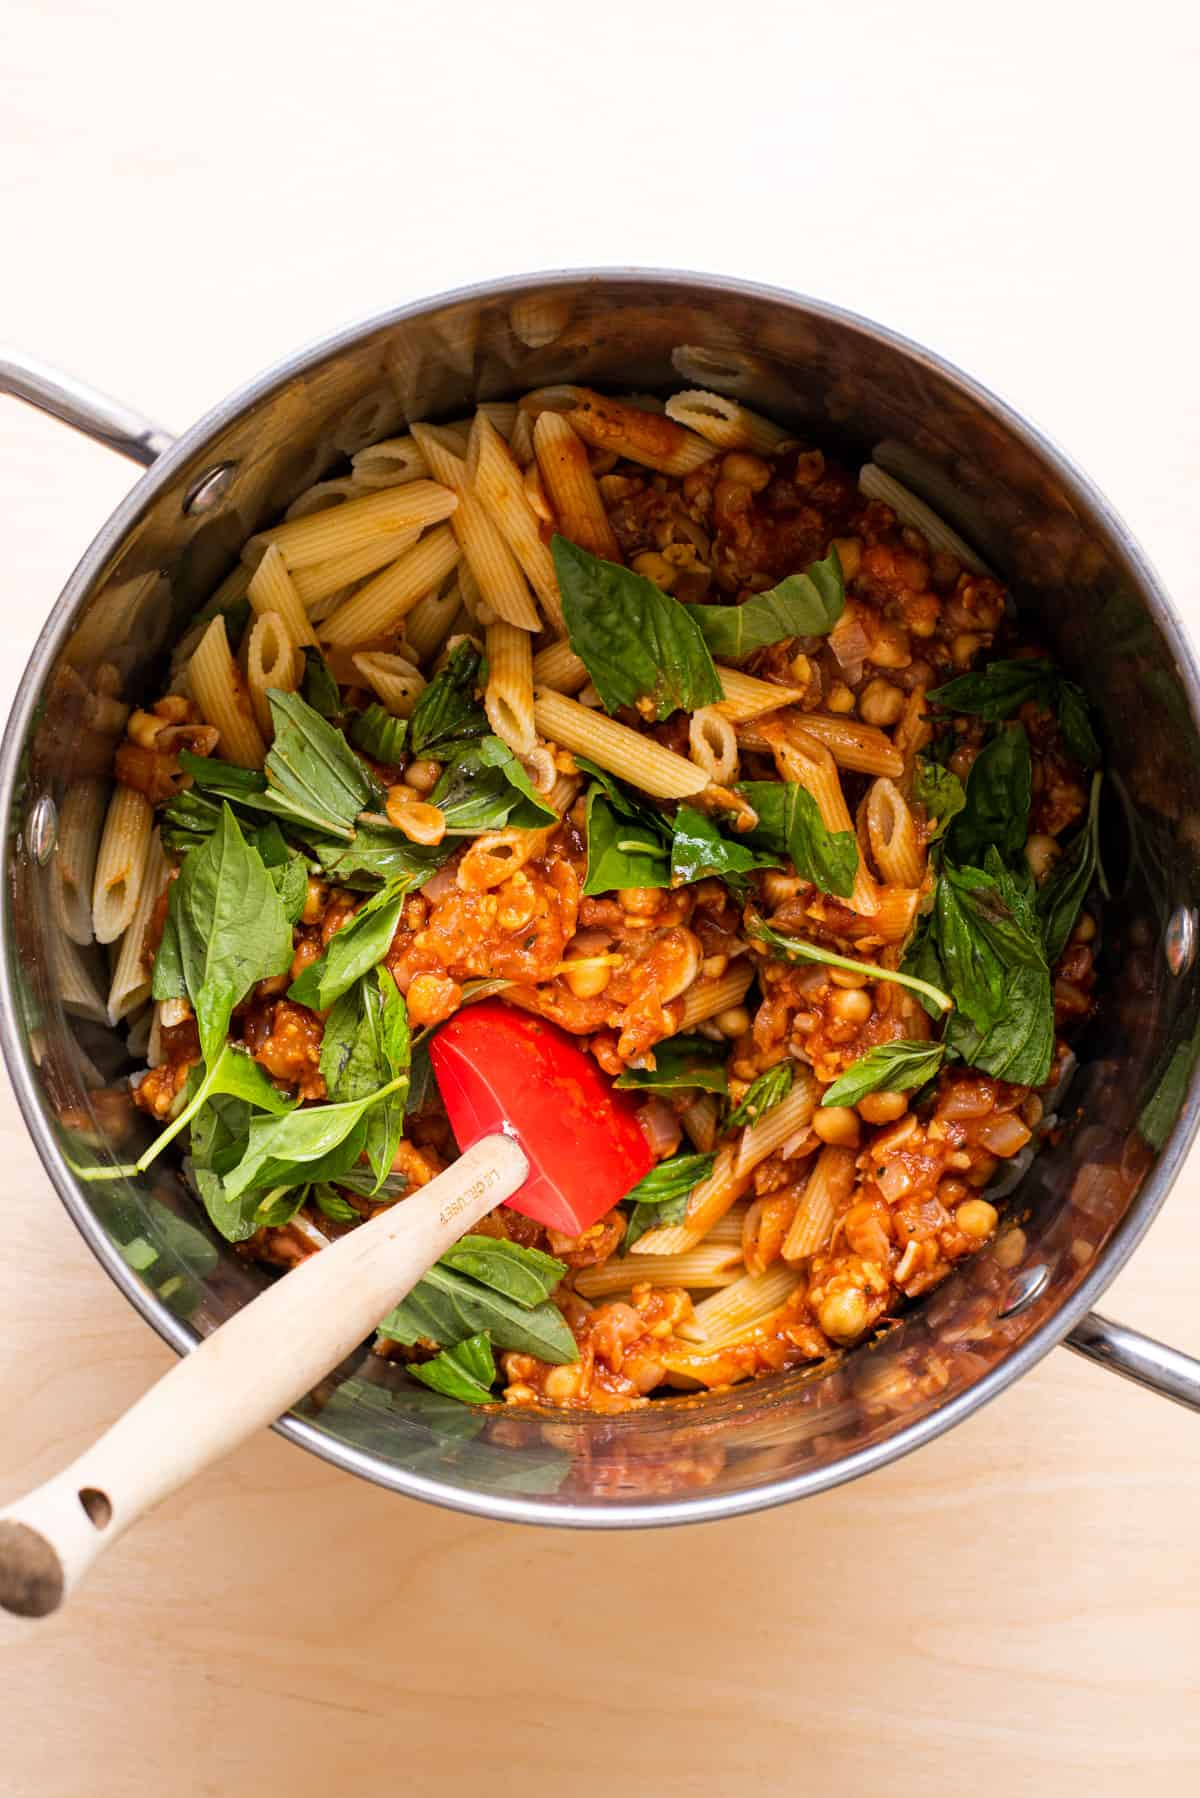 Cooked penne in a pot with chickpea-tomato sauce and torn basil.